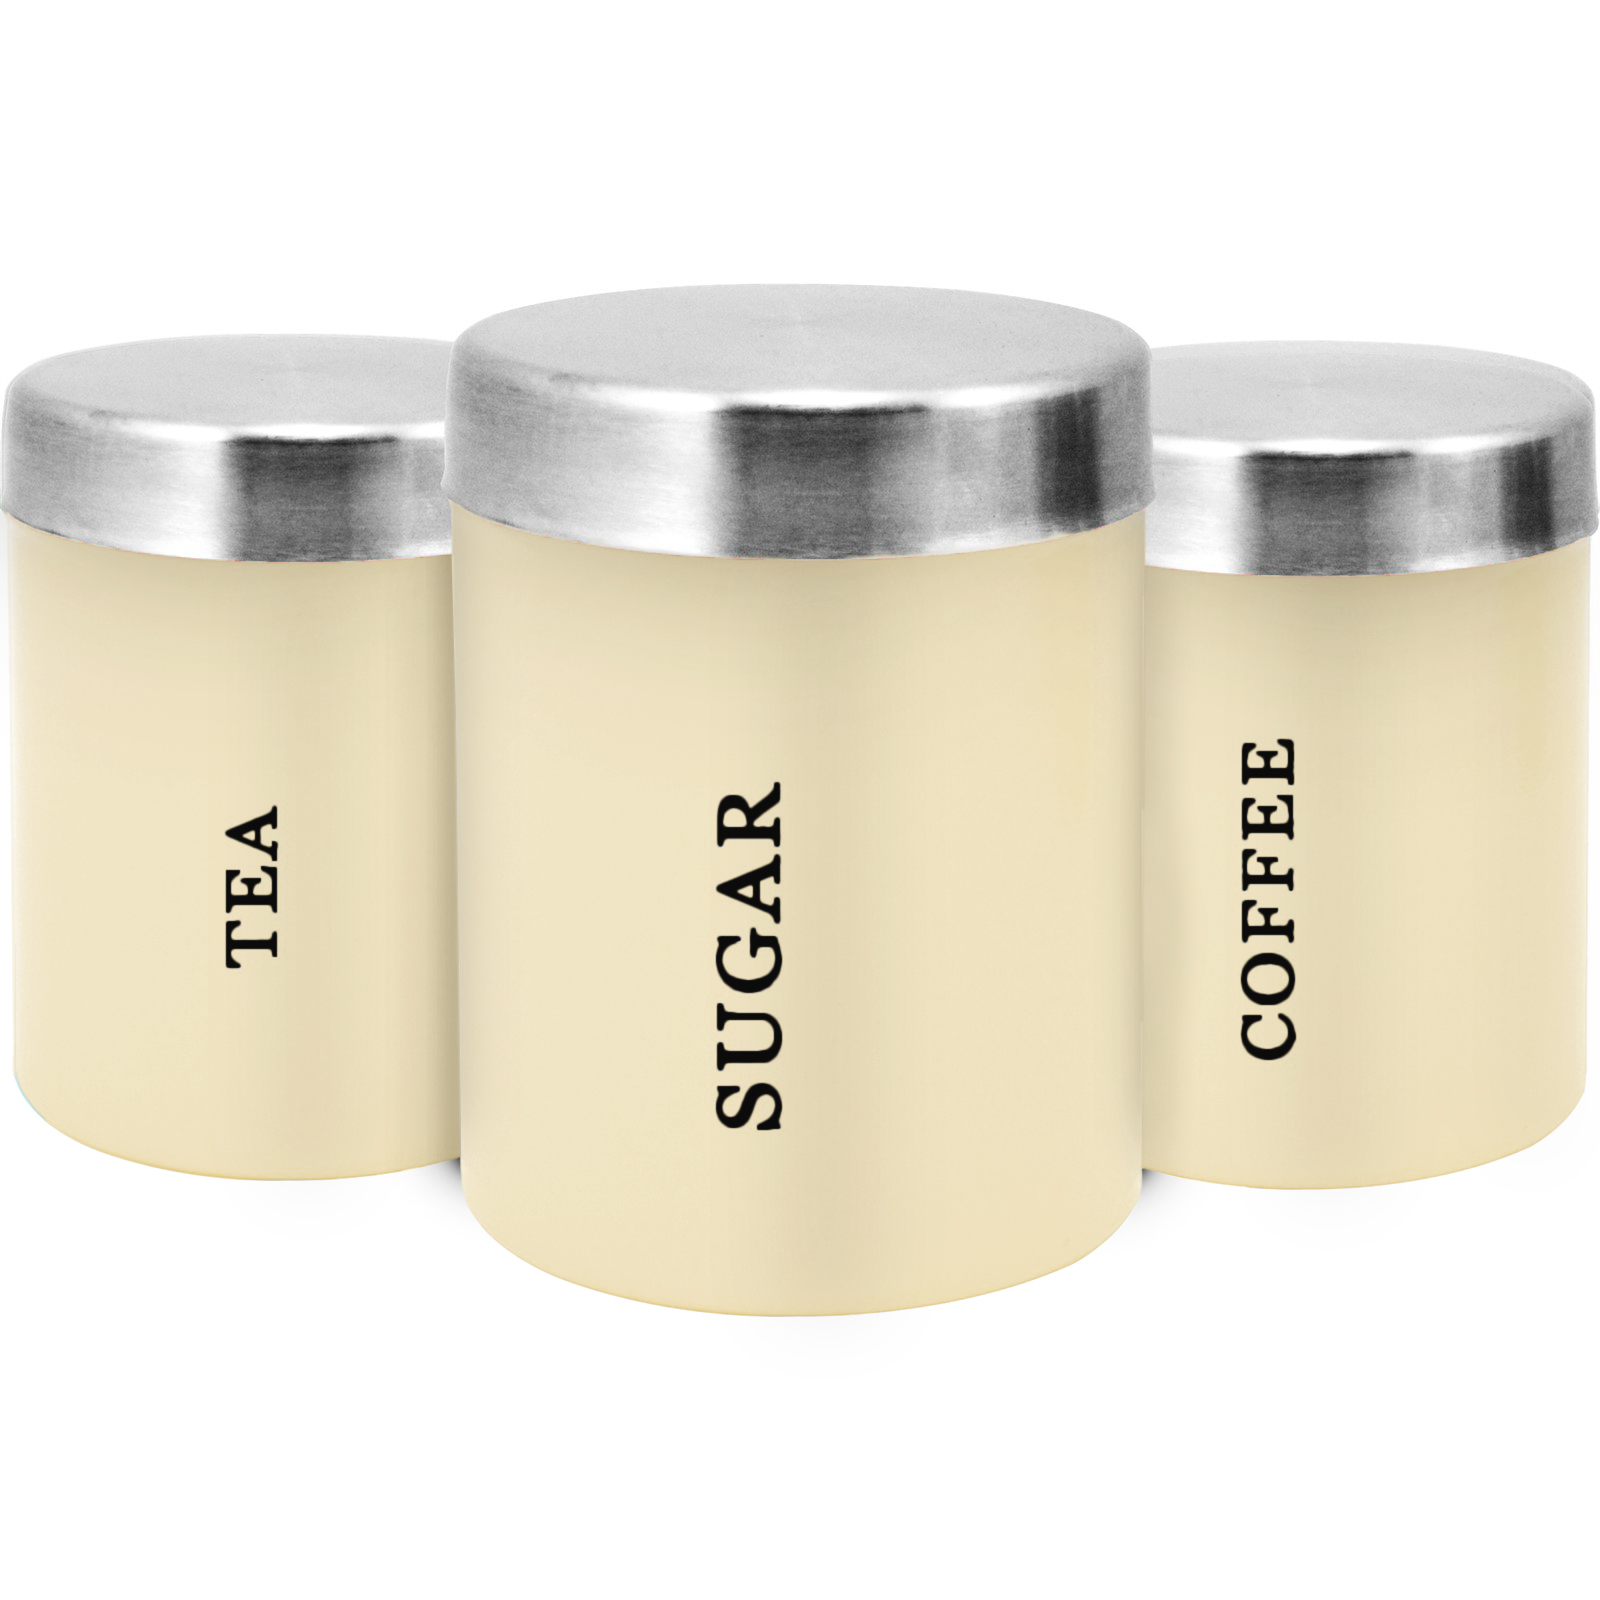 Stainless Steel Window Canister Set 3 Pc >> 3PC CANISTER SET STAINLESS STEEL COFFEE TEA SUGAR JAR LID CANISTERS STORAGE NEW | eBay